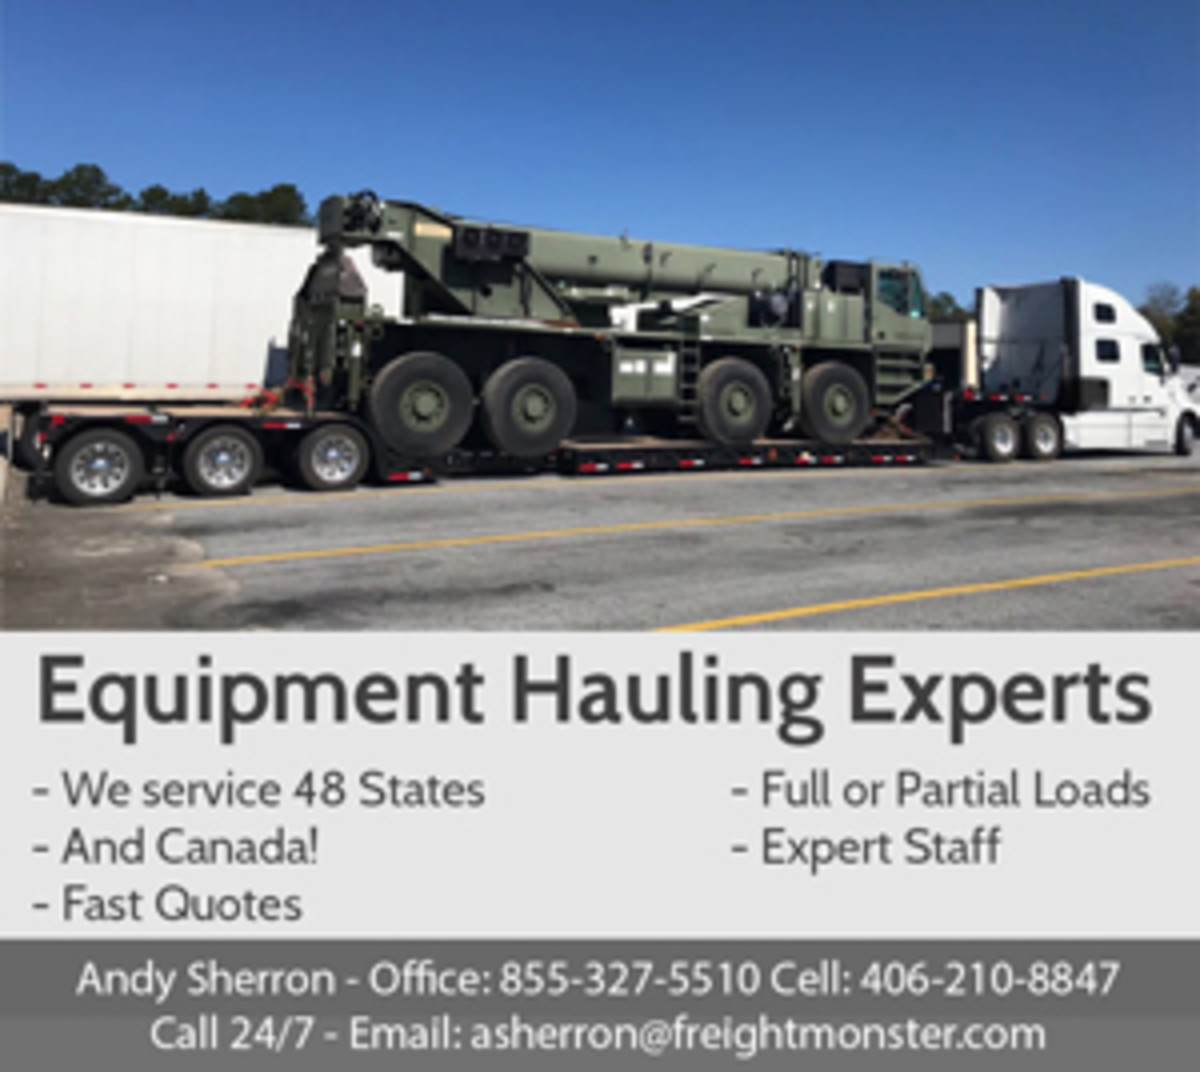 military-truck-ad-freight-monster